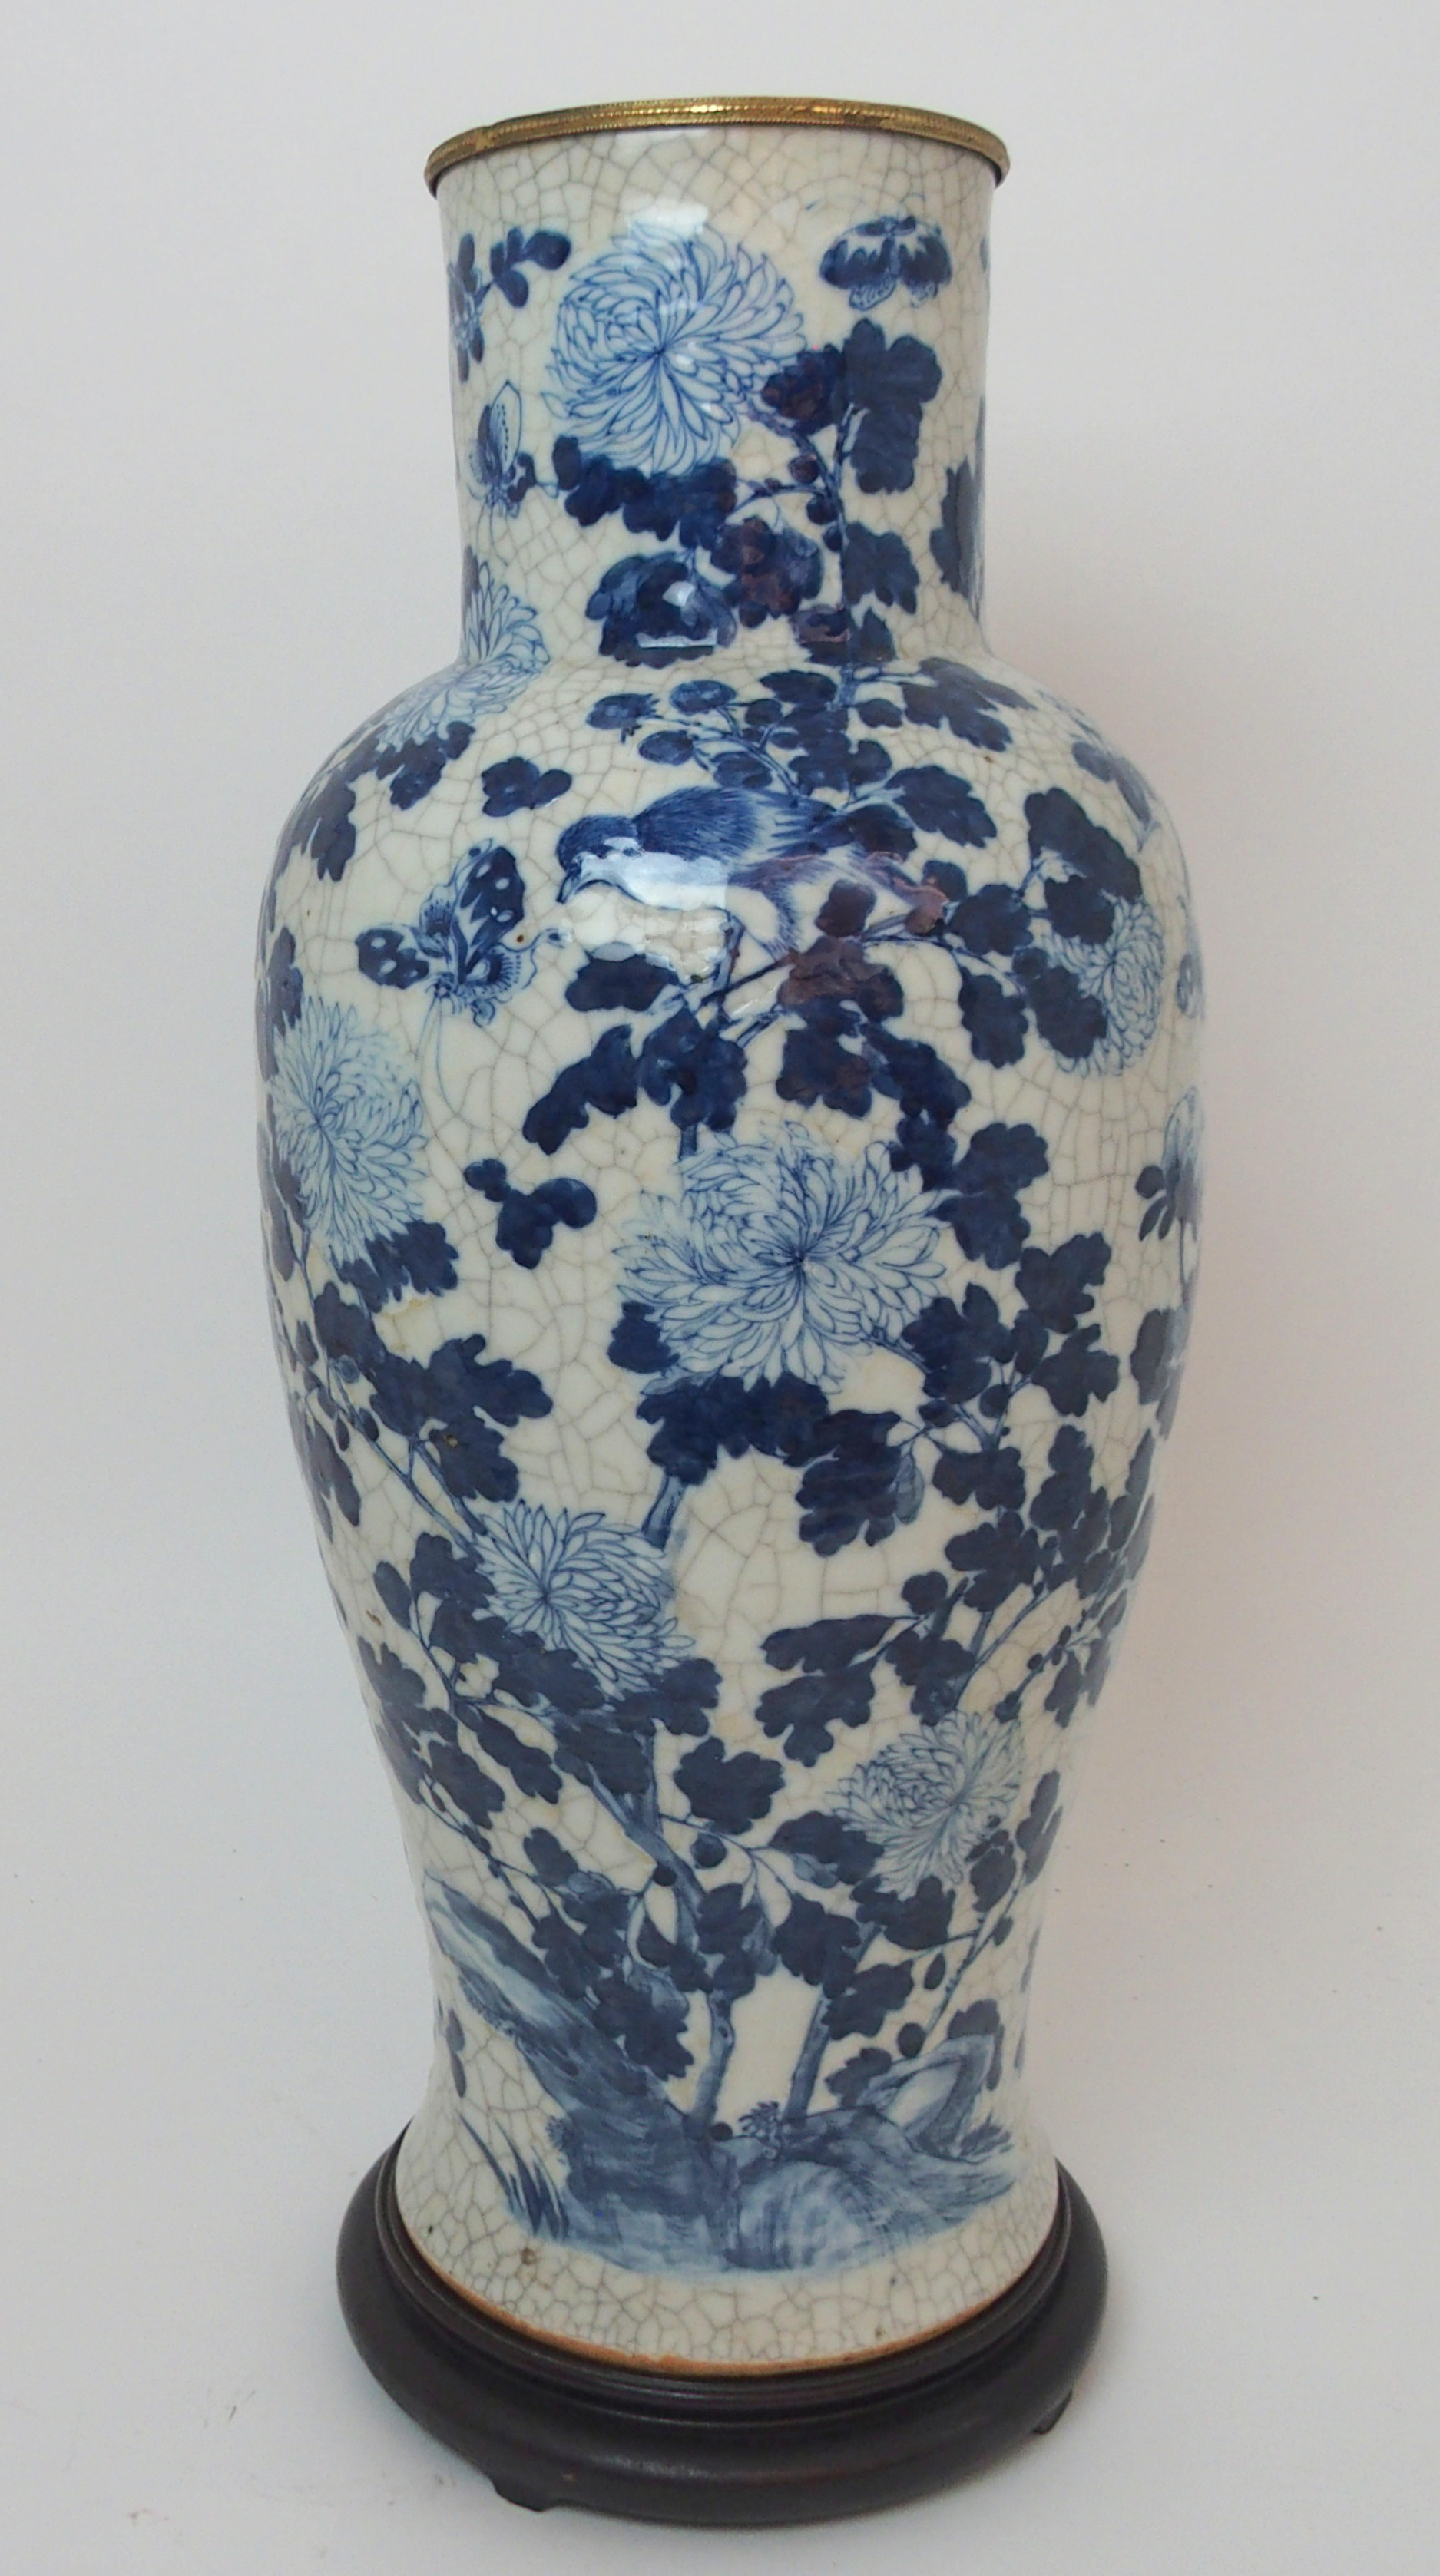 A LARGE CHINESE BLUE AND WHITE MOULDED VASE painted with birds and bats amongst peonies